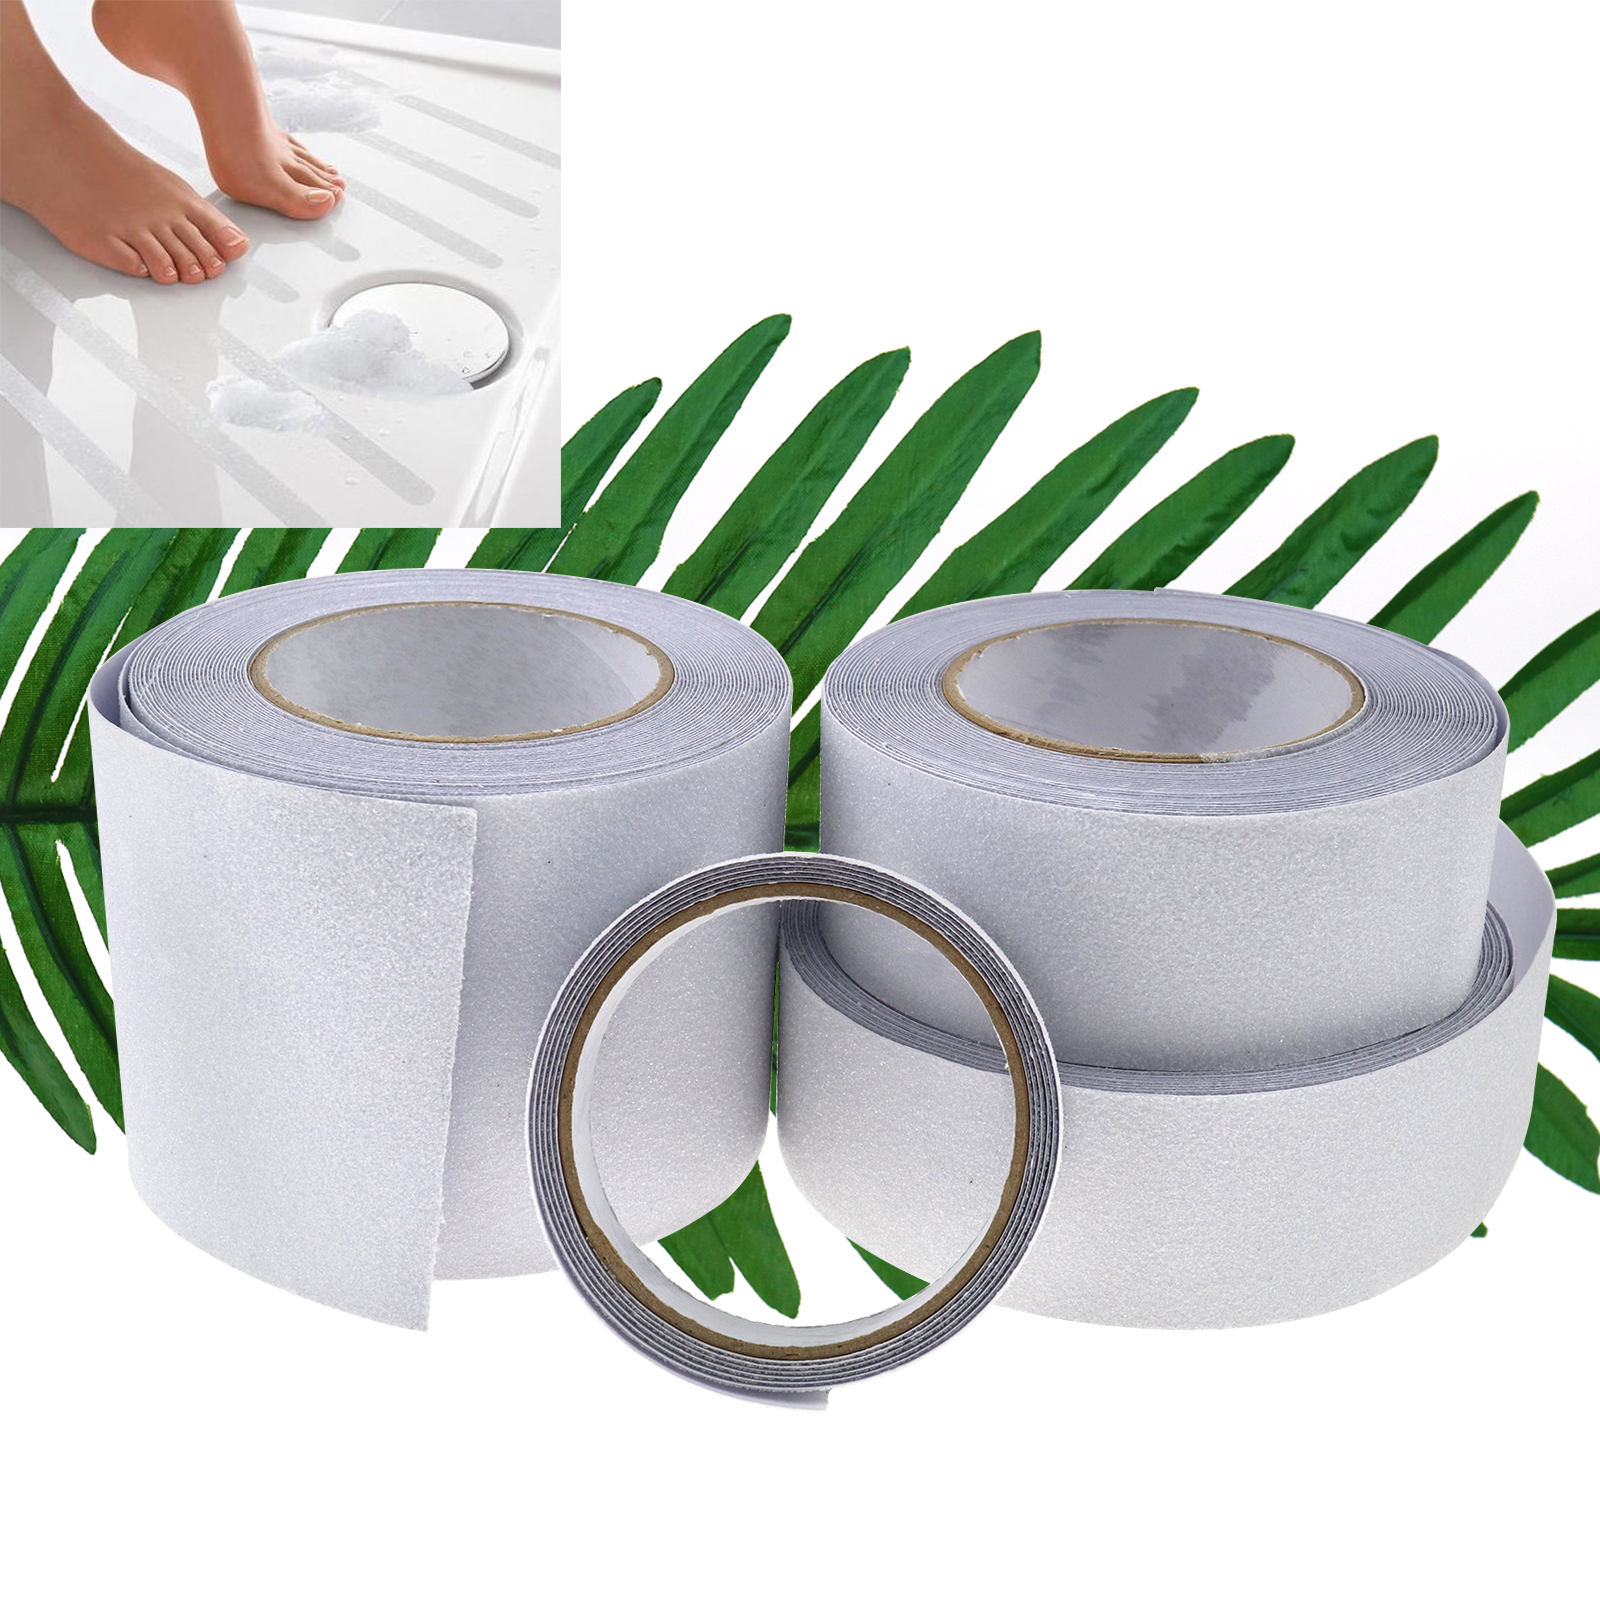 1m Transparent Non-Skid Safety Tape Grit Tape for Bathroom ...